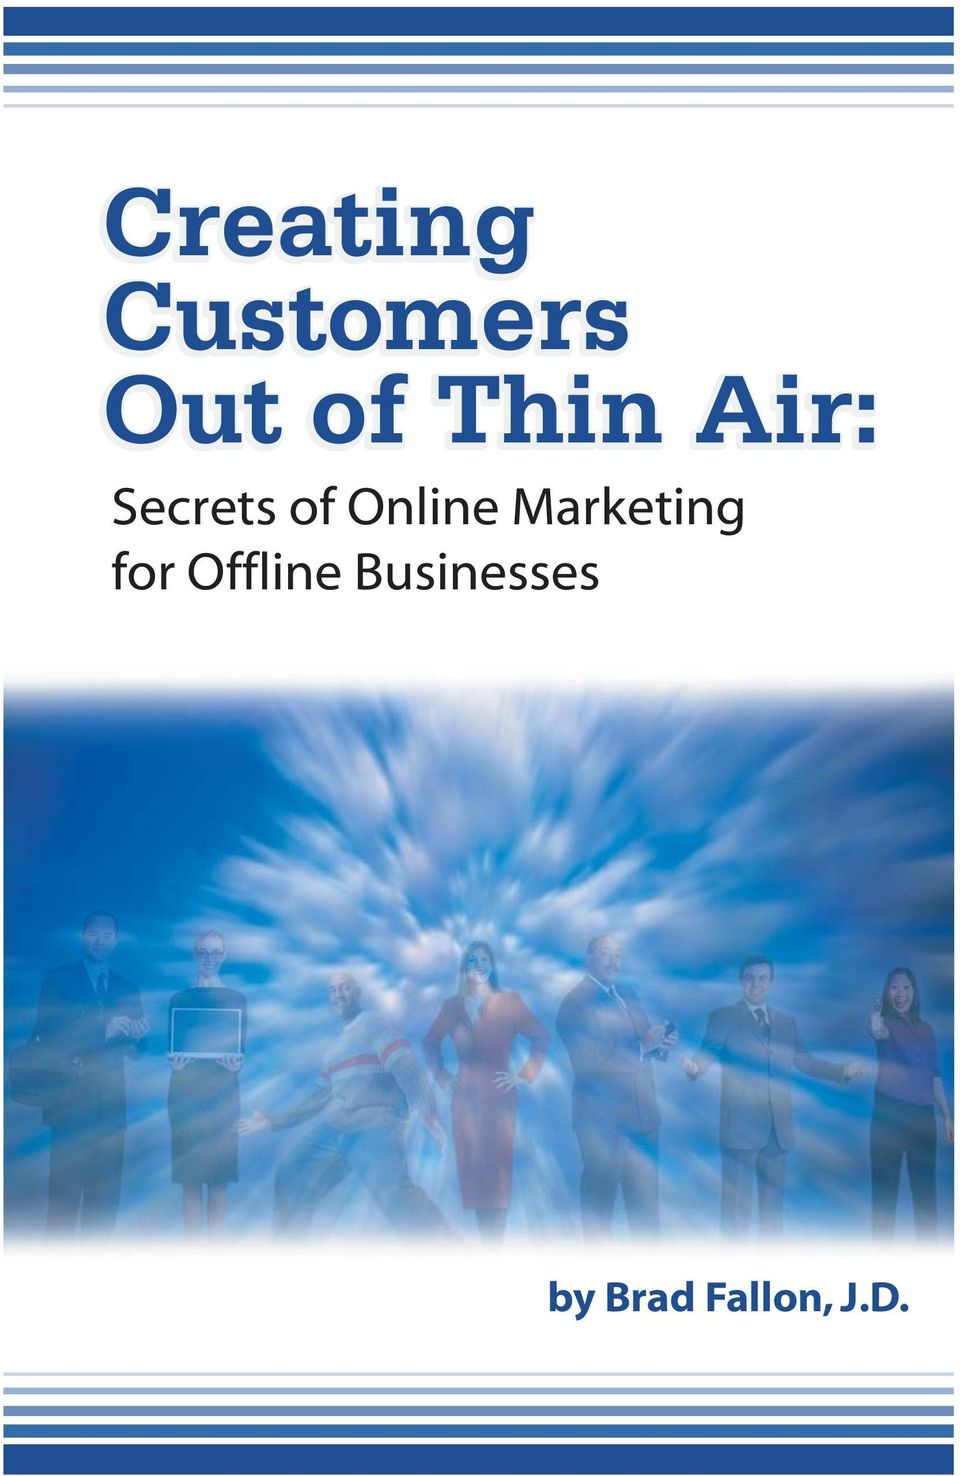 Online Marketing for